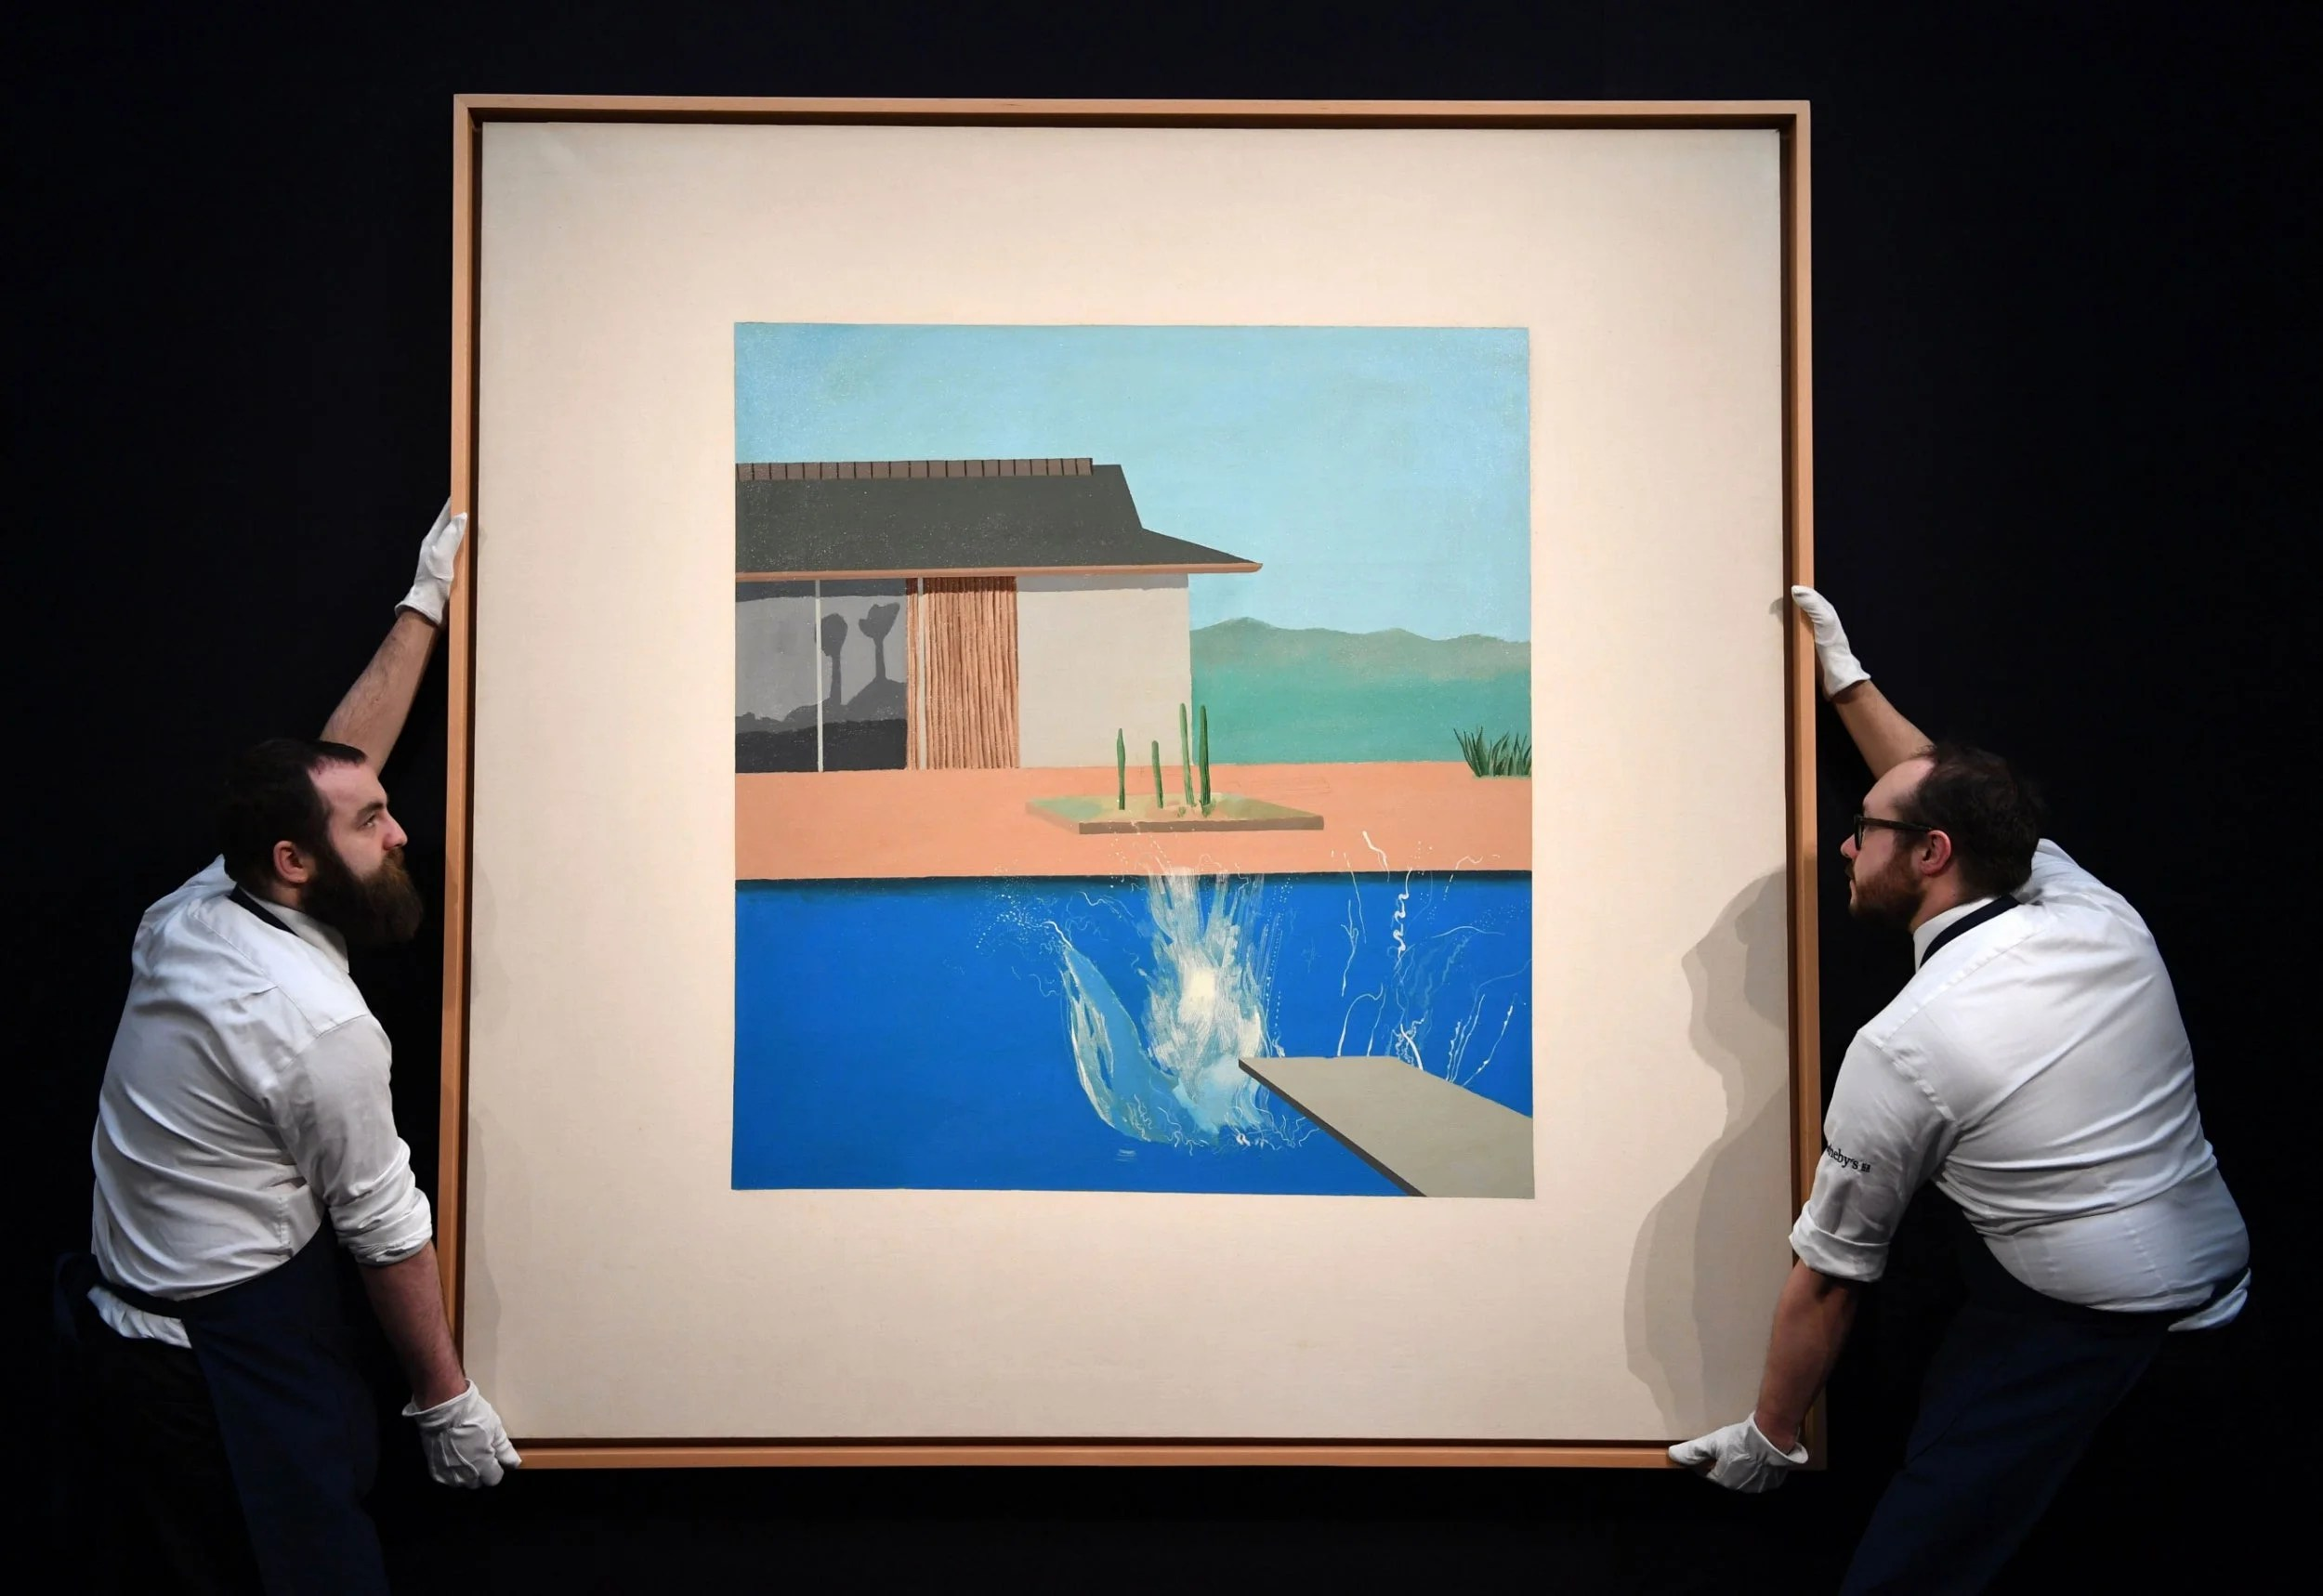 David Hockney S The Splash Fetches 23 1m At Auction The Independent The Independent